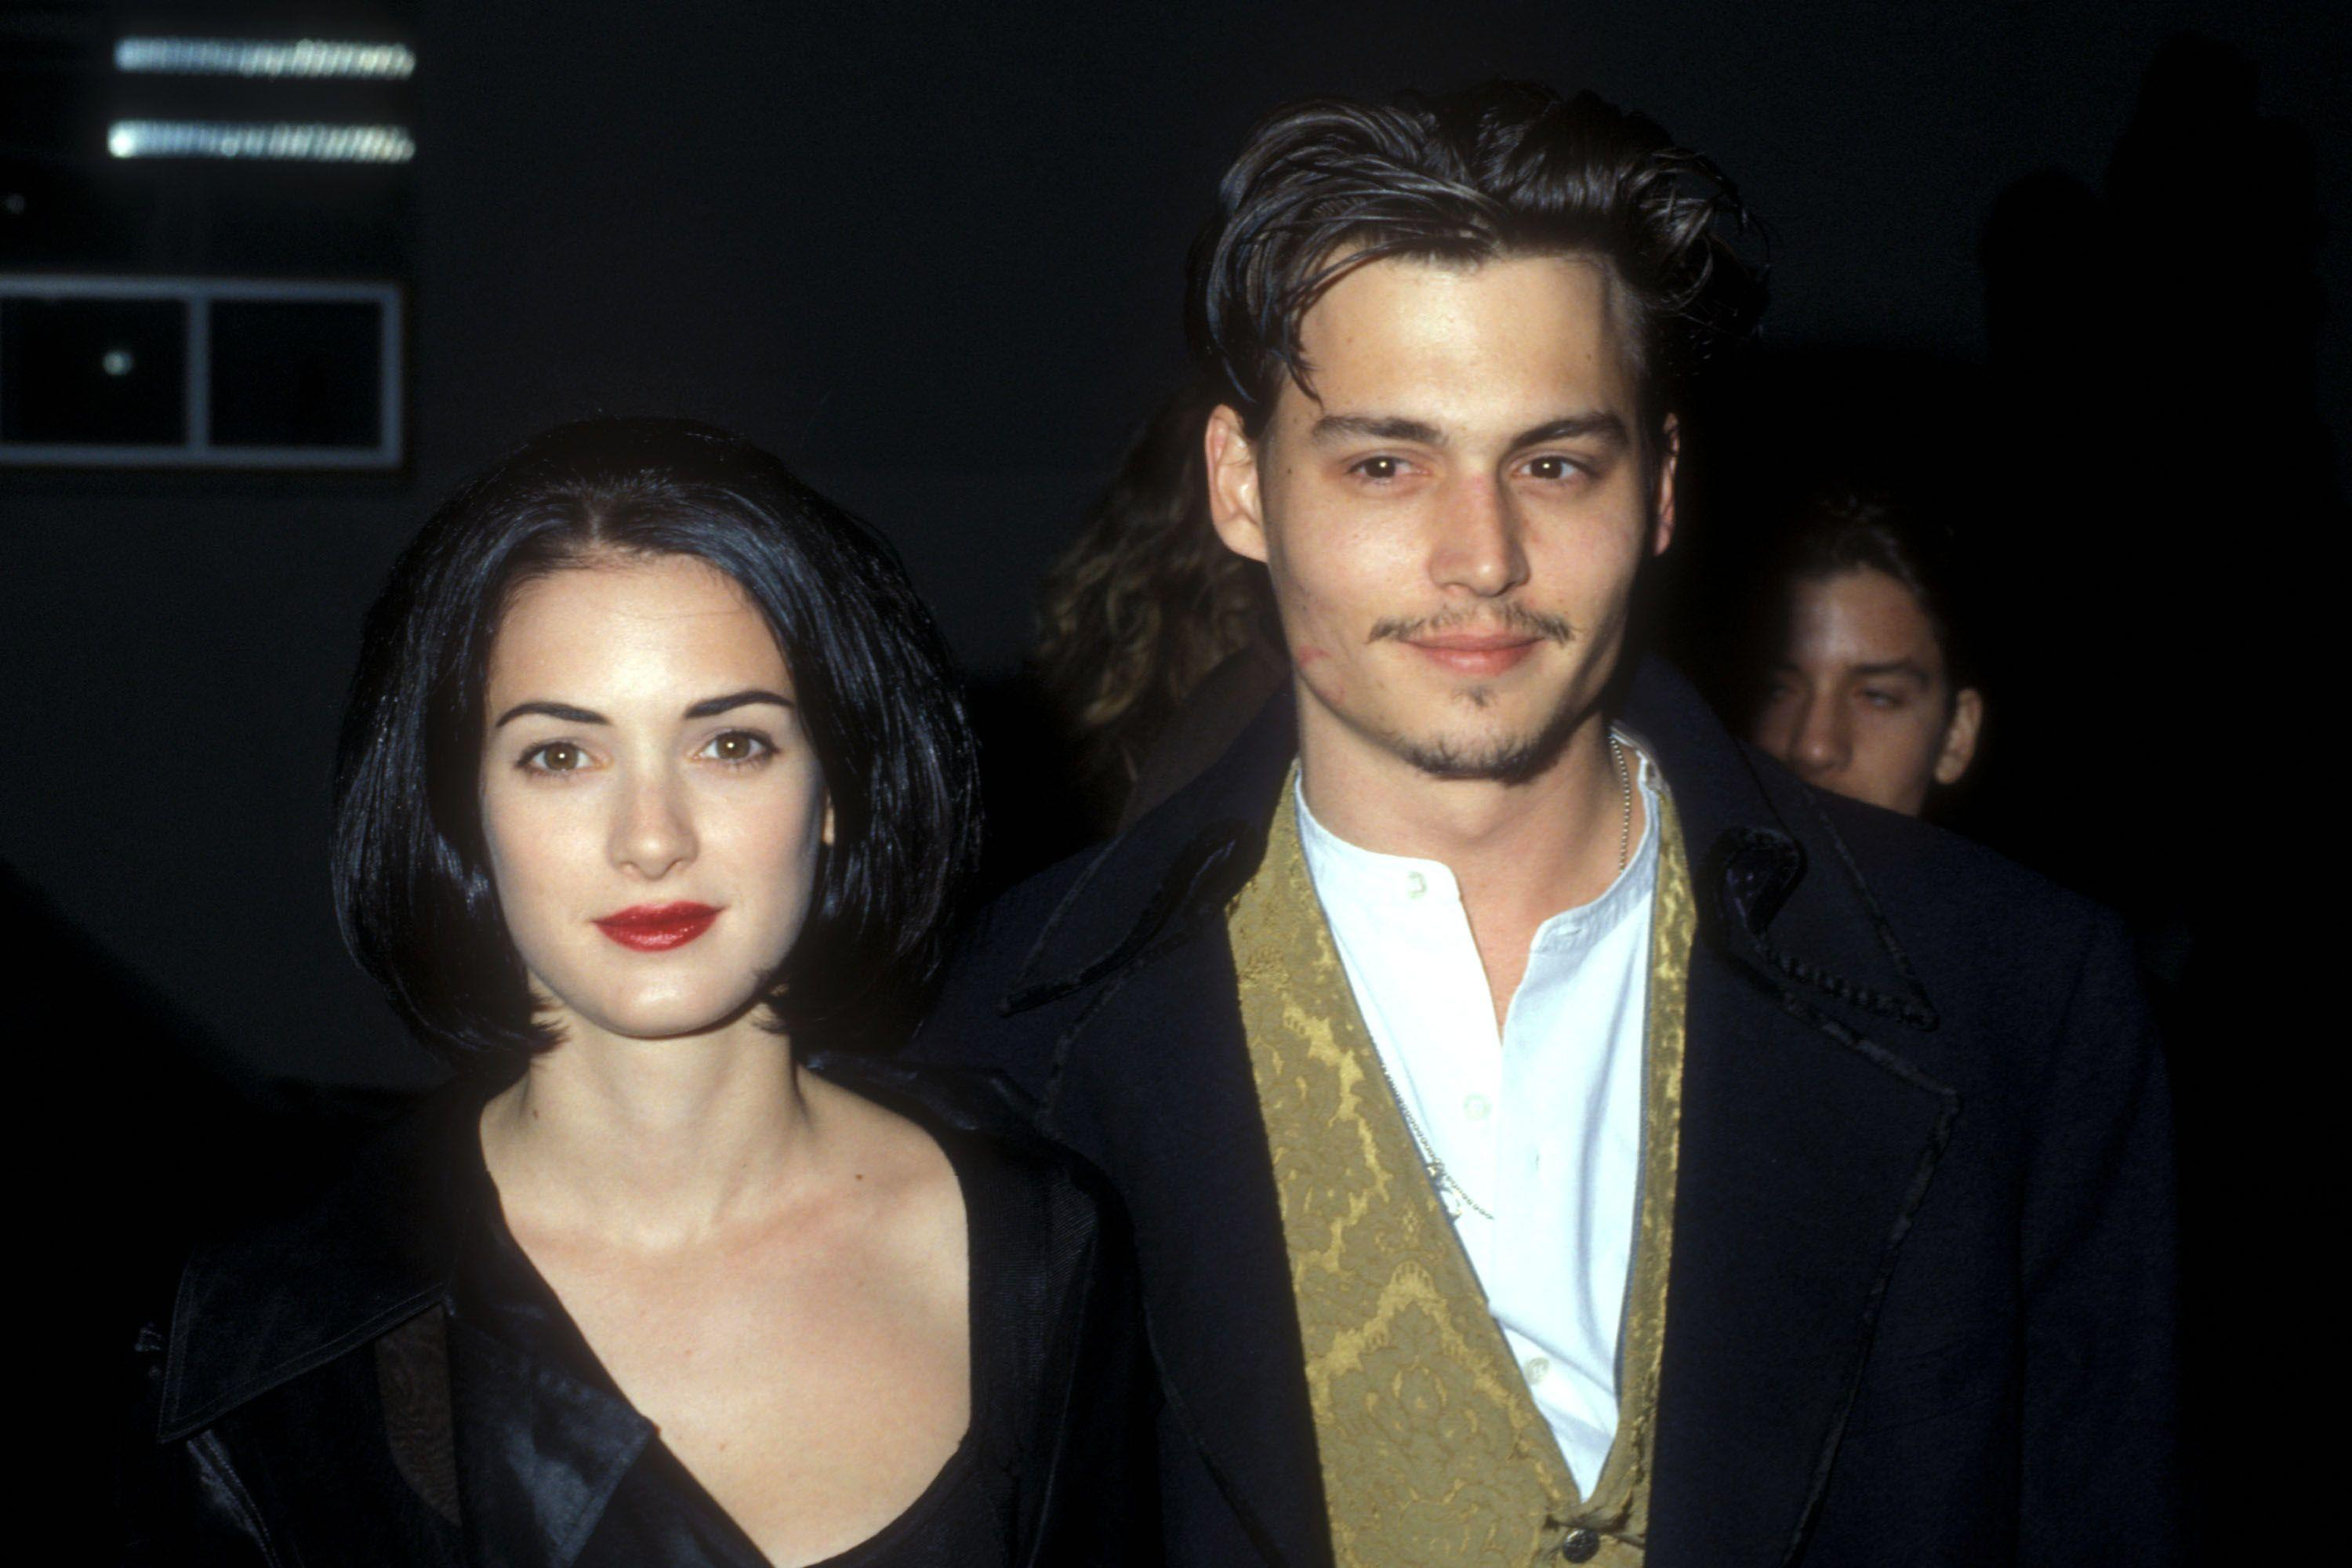 Johnny Depp And Winona Ryder: An Unforgettable Romance